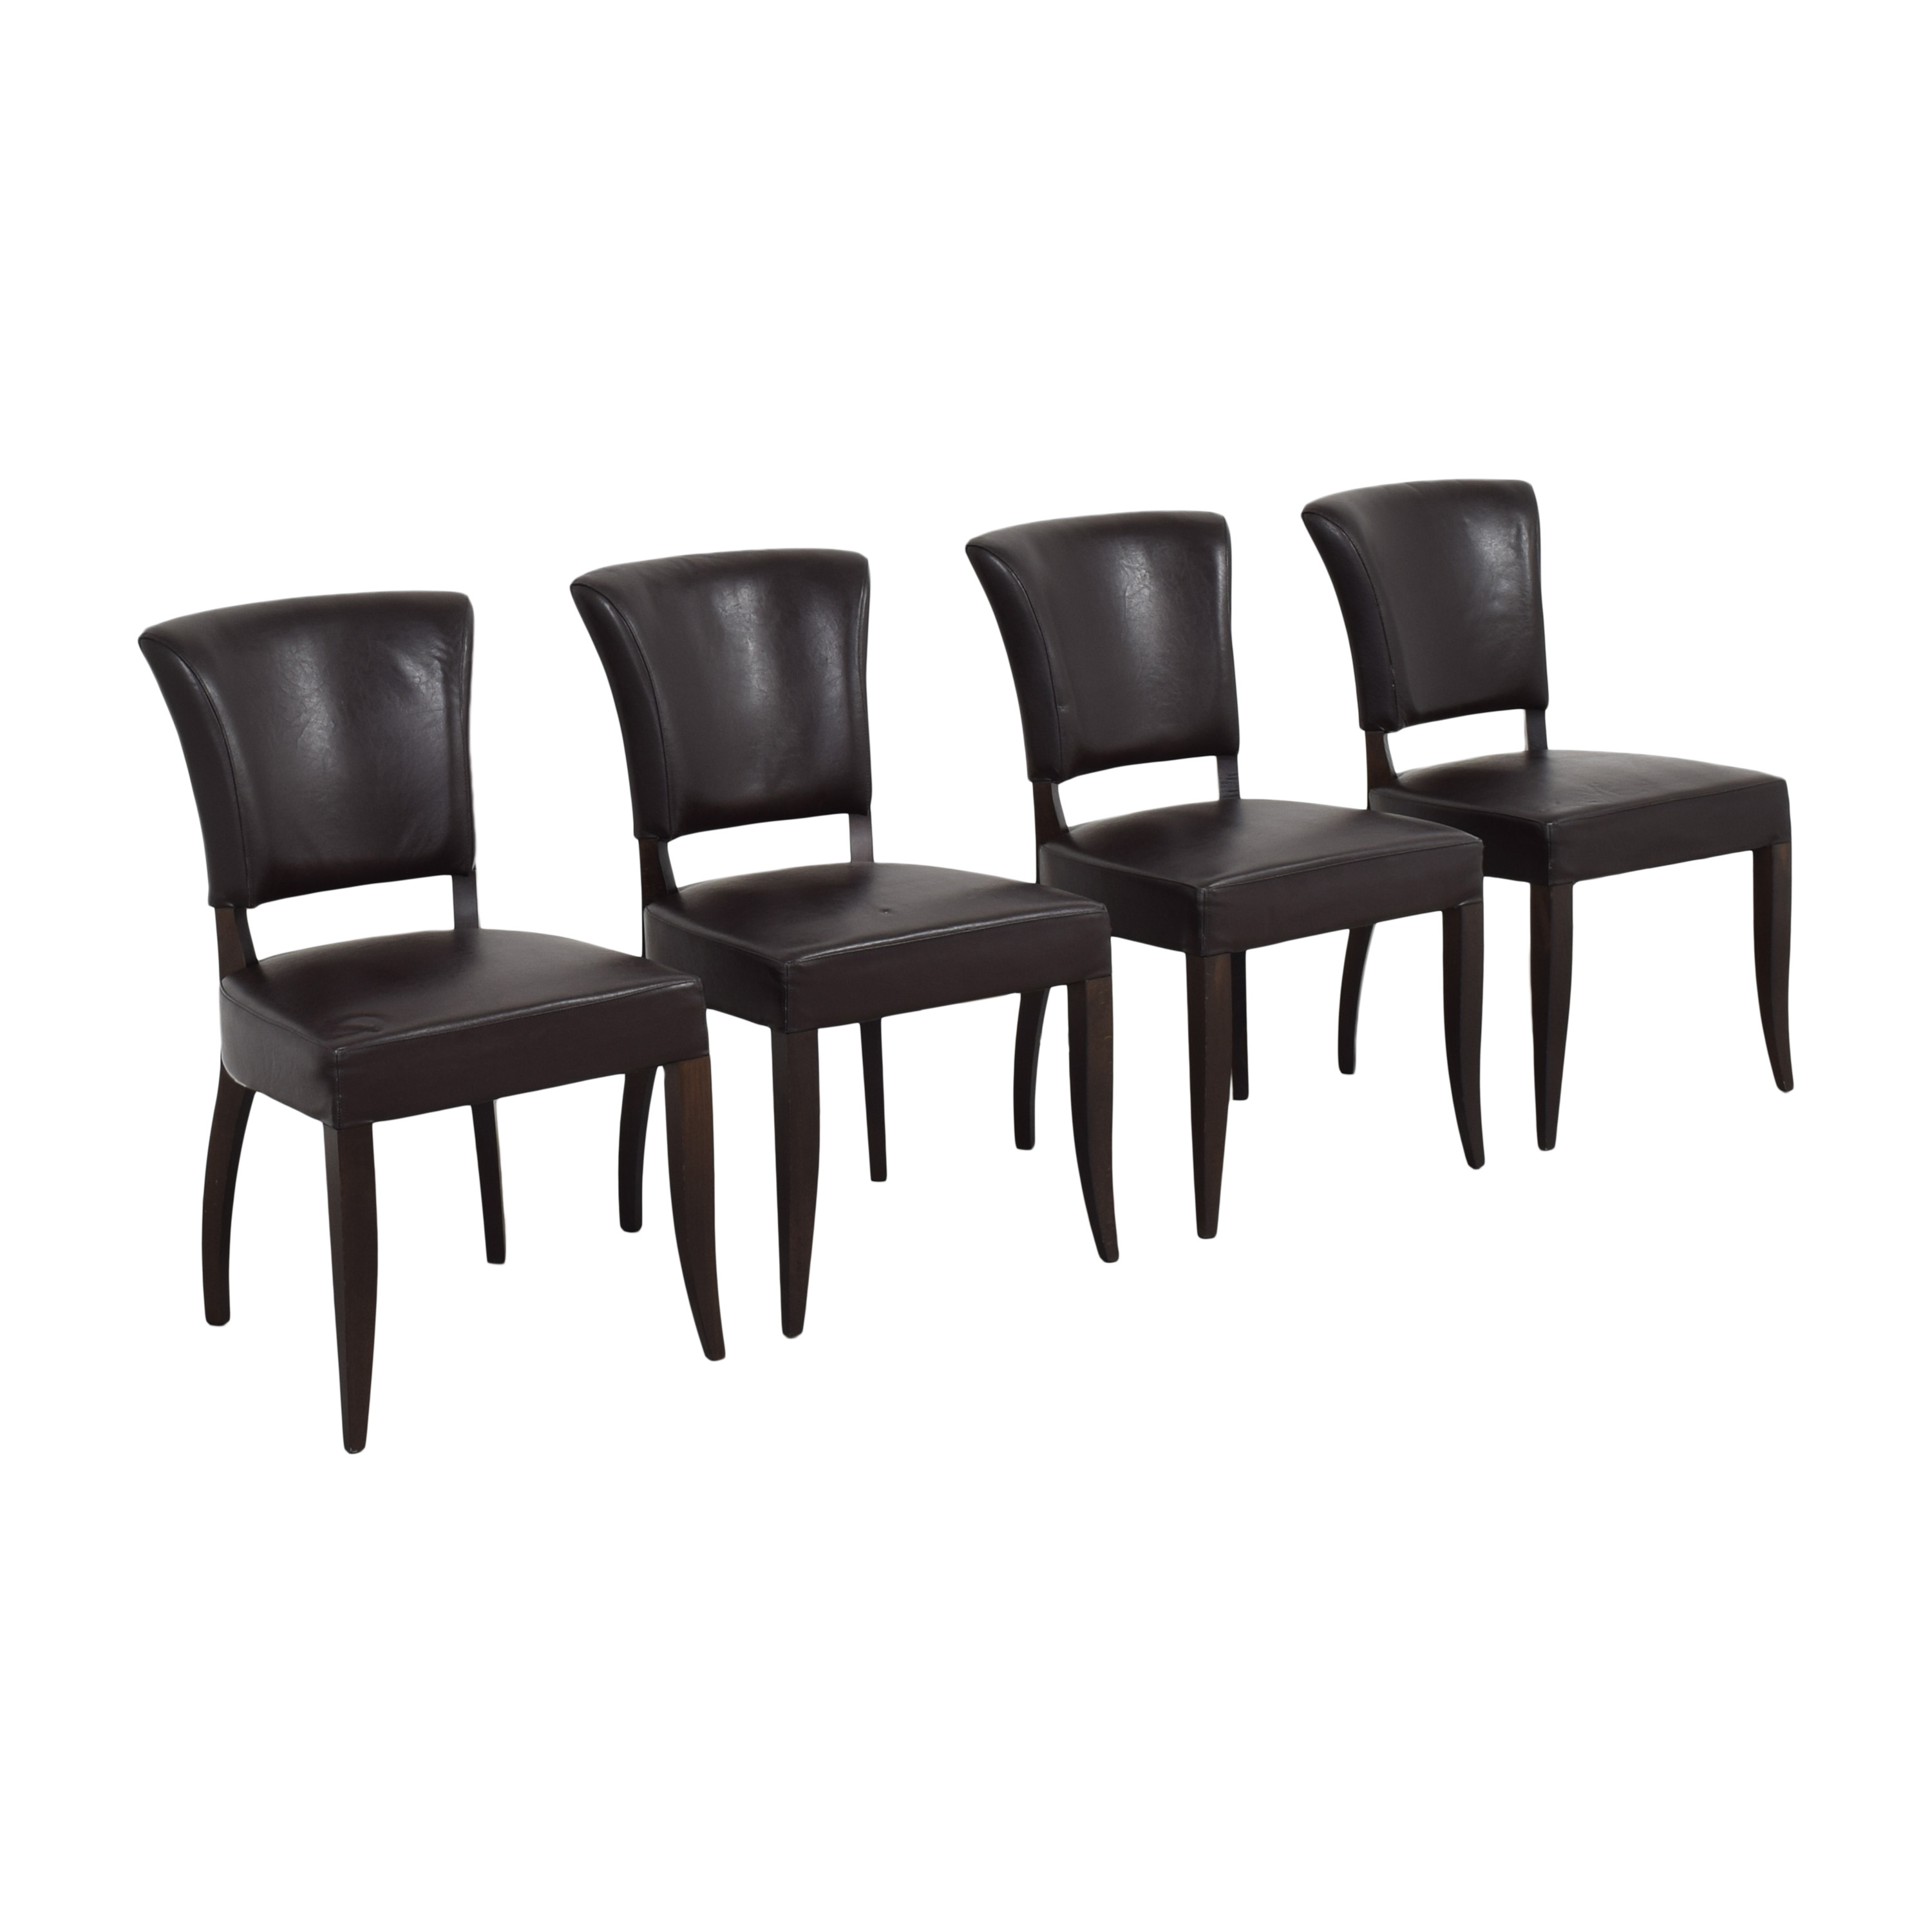 Crate & Barrel Crate & Barrel Side Dining Chairs ct